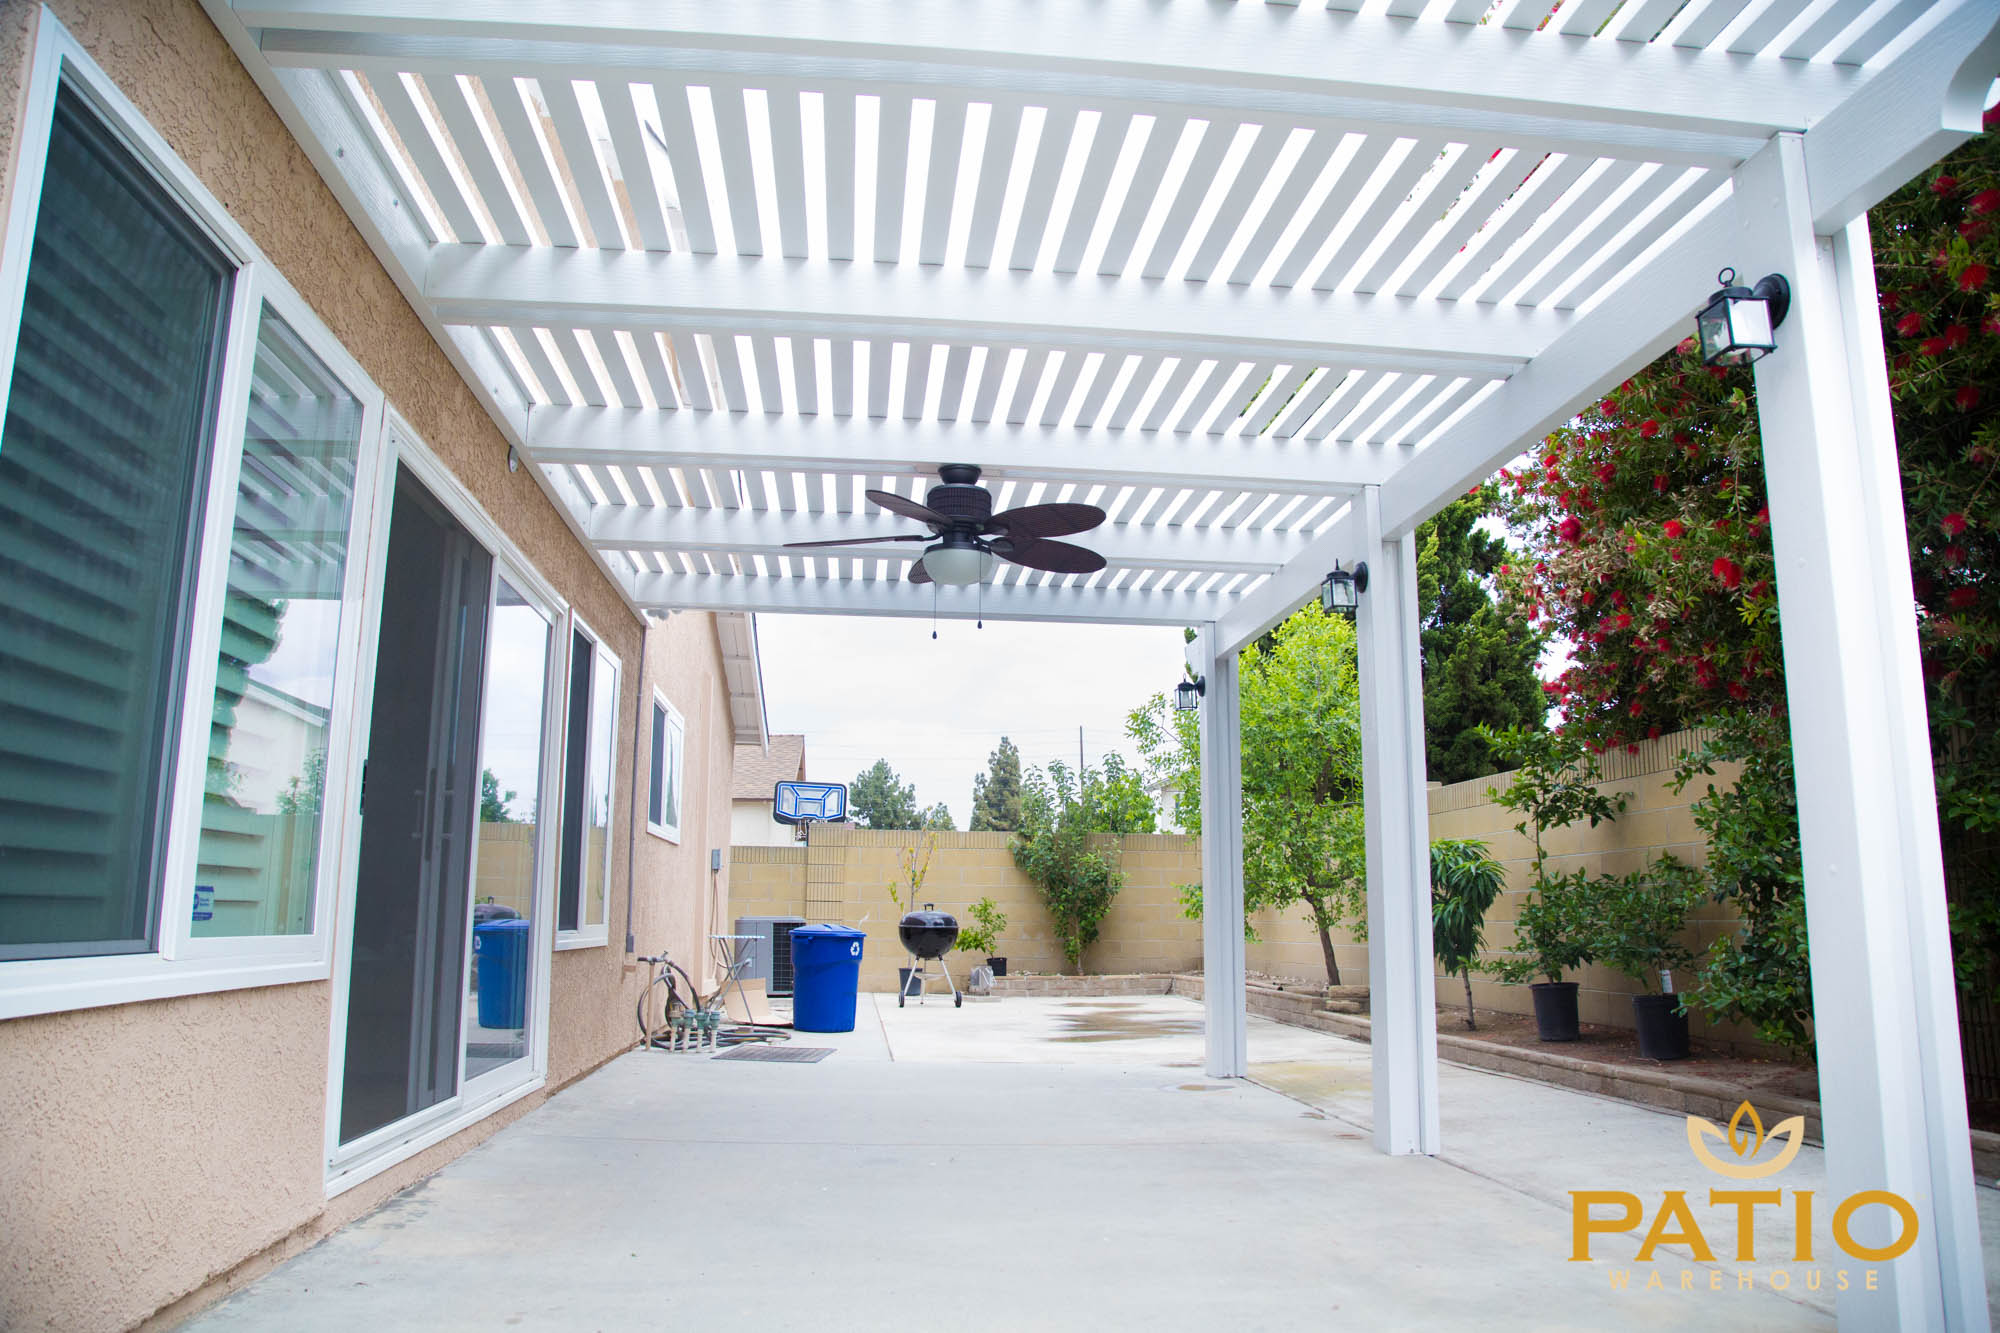 Exceptionnel Elitewood Lattice Patio Cover In Orange County, California. Elitewood ...